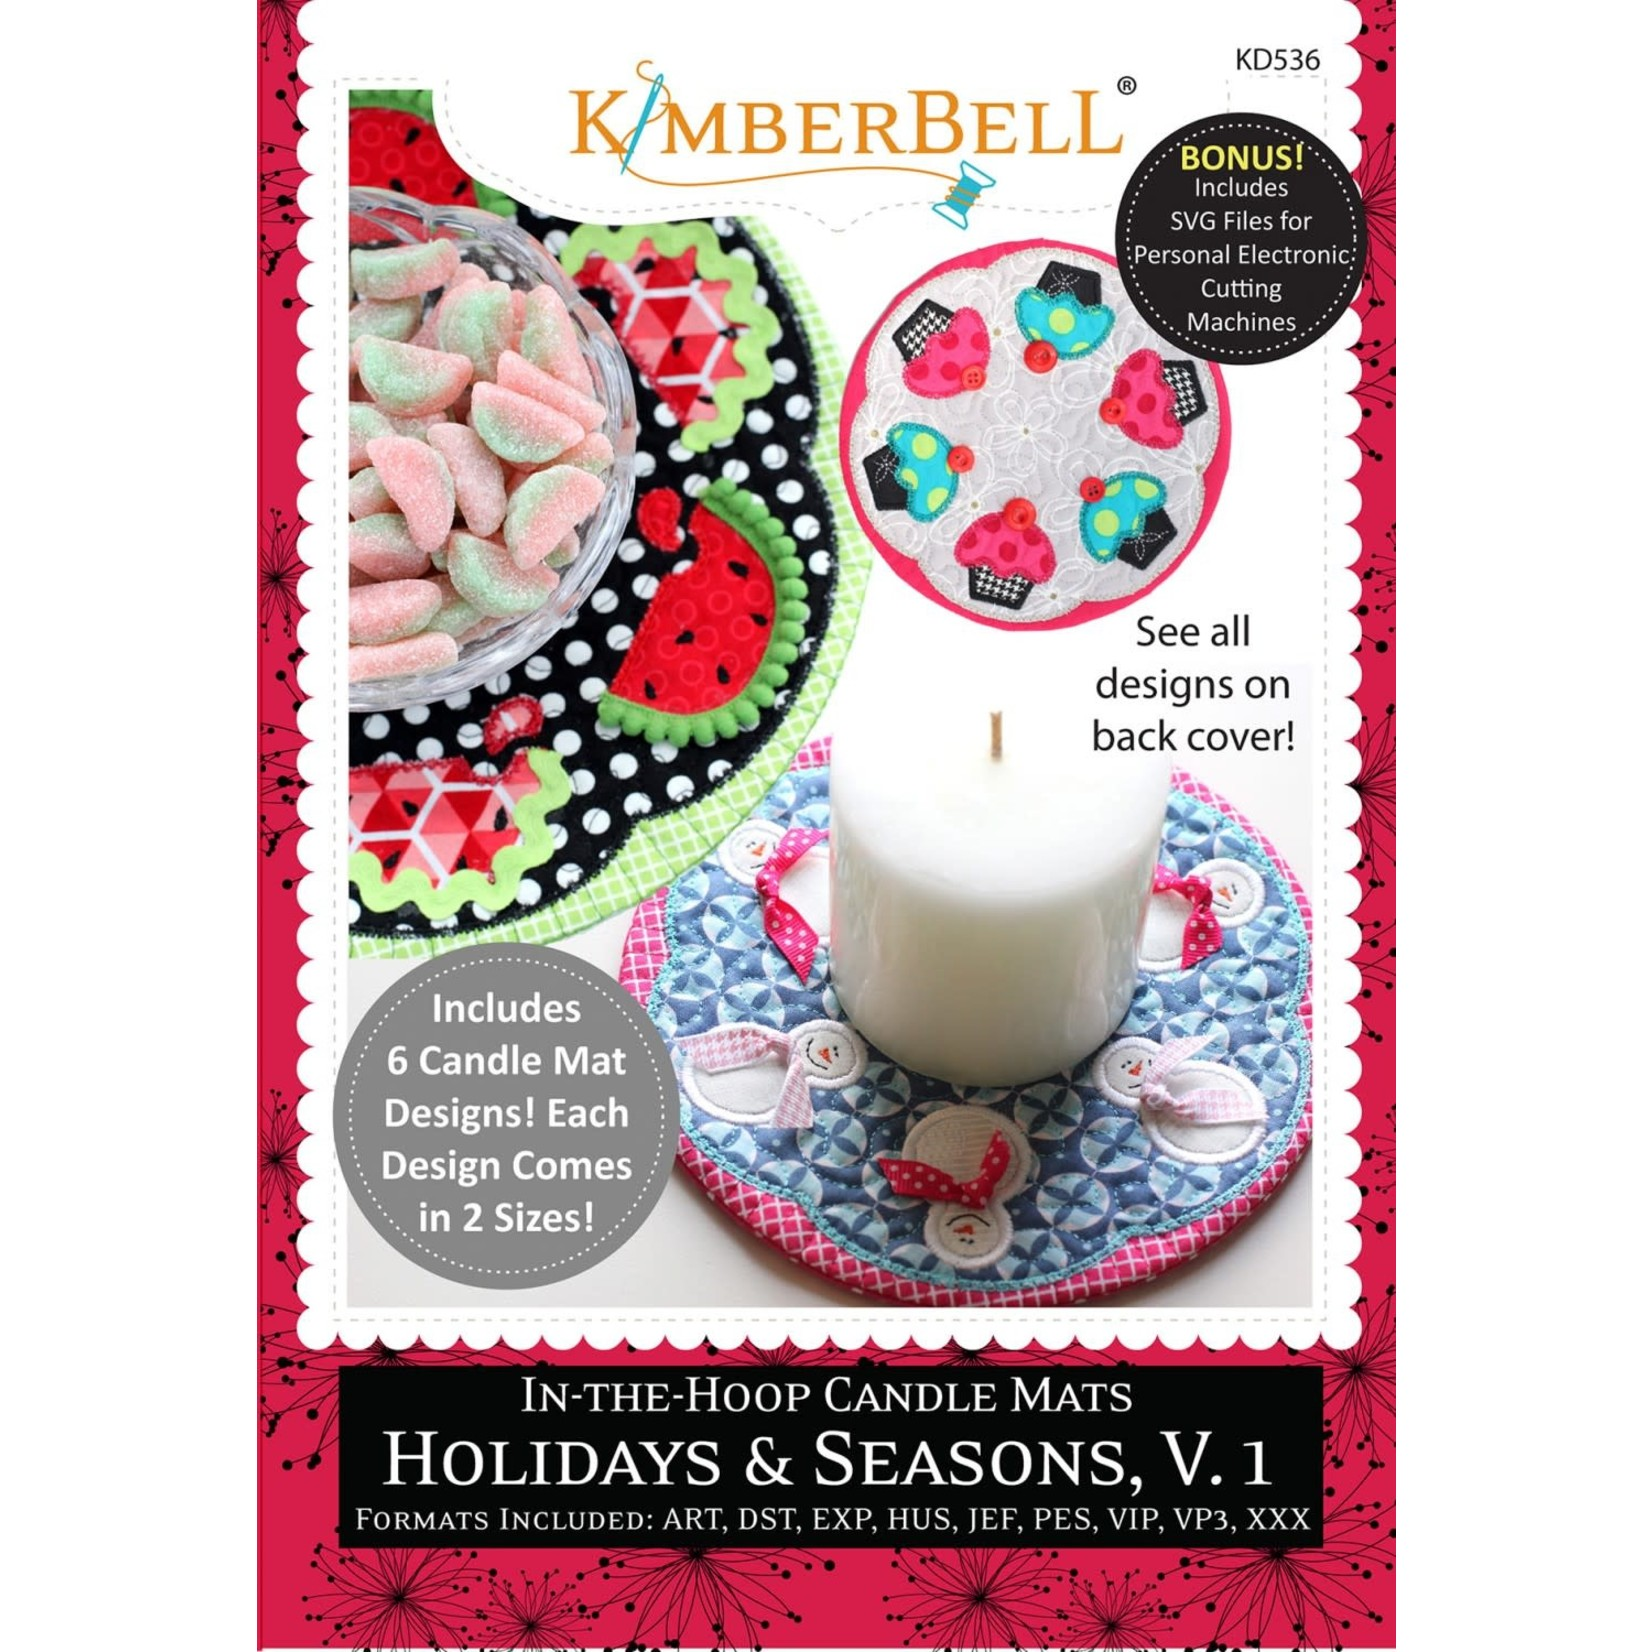 KIMBERBELL DESIGNS In-the-Hoop Candle Mats: Holidays & Seasons, Volume 1 Machine Embroidery CD